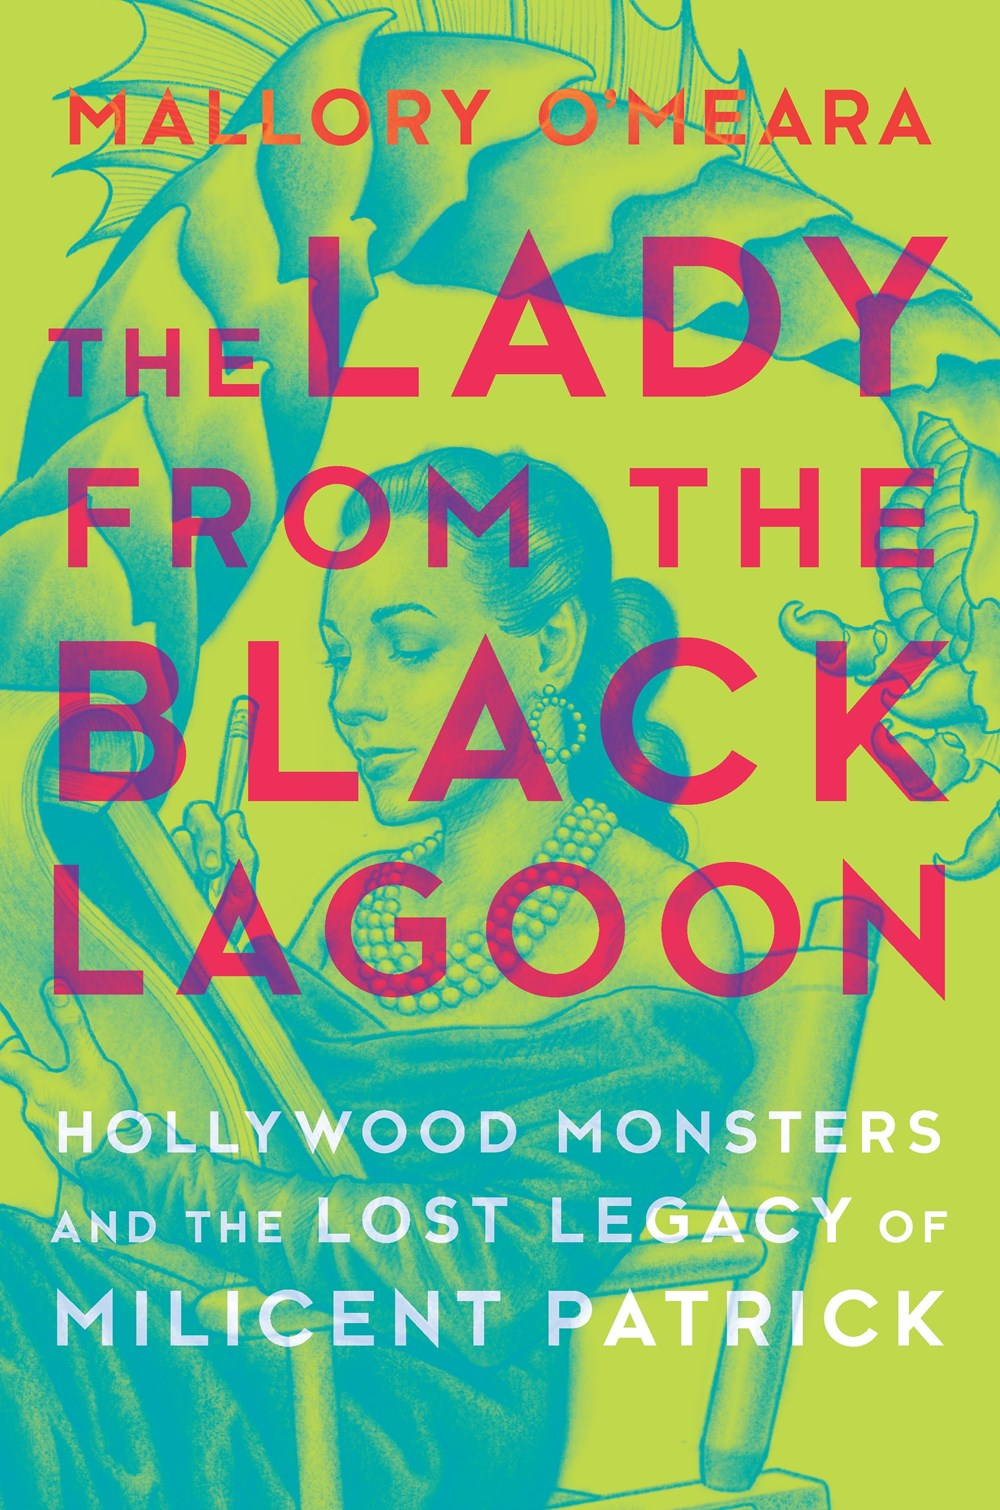 The Lady from the Black Lagoon cover